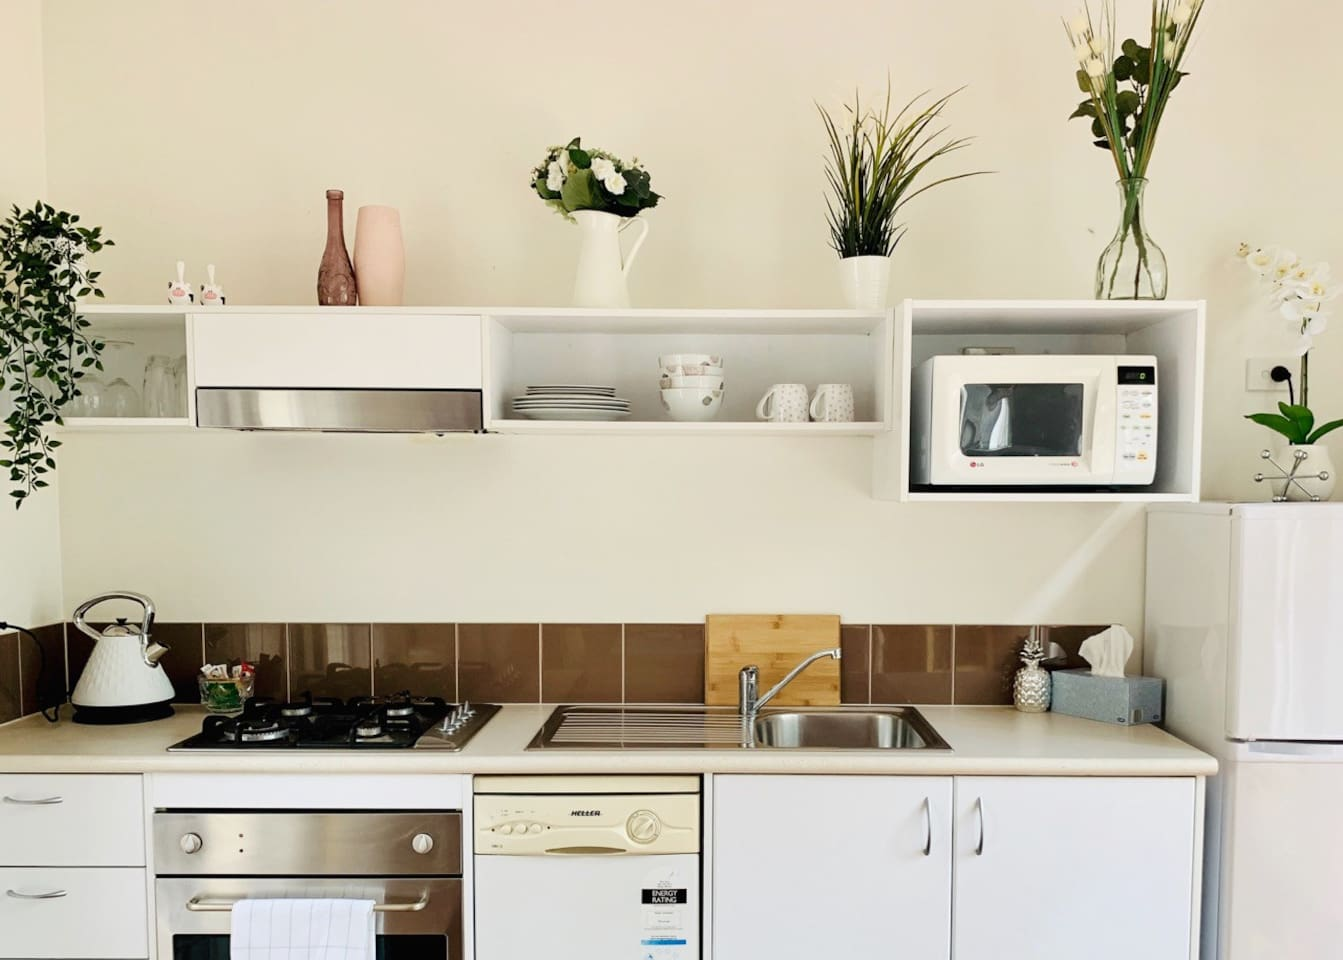 Fully Equipped kitchen with Bianco gas stove, electric oven, dishwasher, microwave and all cooking utensils and equipment, as well as basic cooking oil & Seasonings!